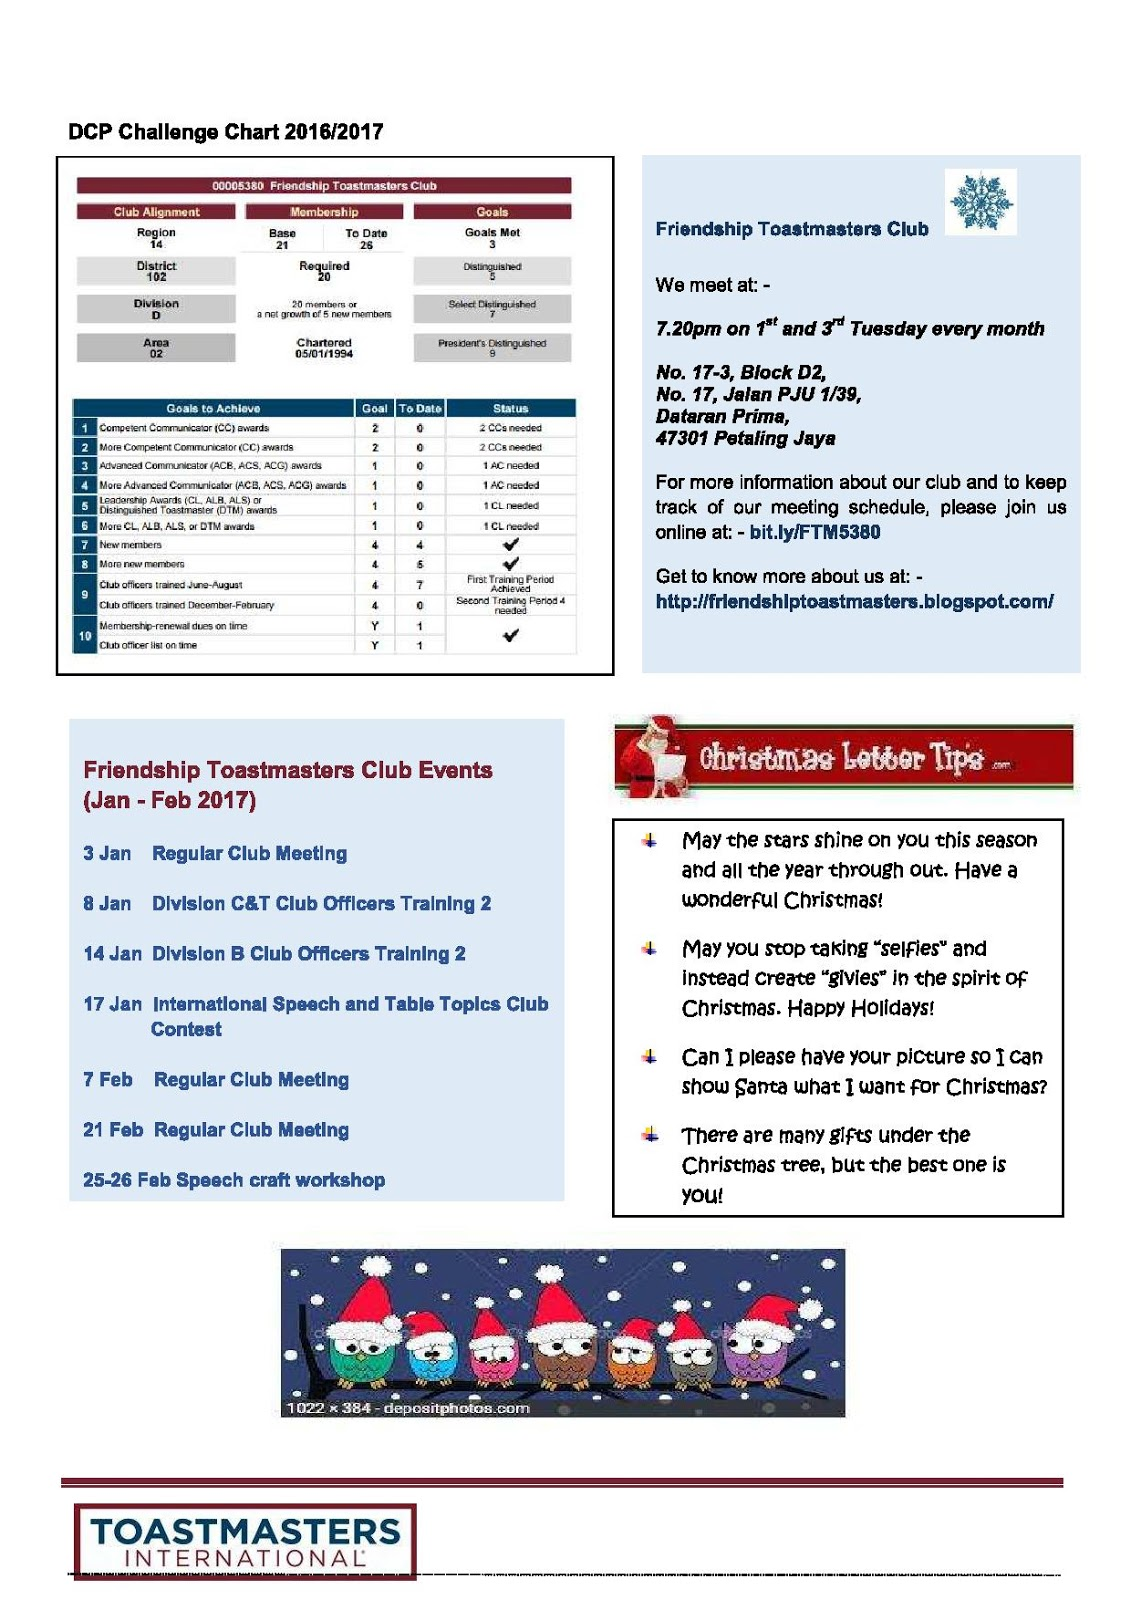 Friendship Toastmasters Club Newsletter Issue 5 2016 2017